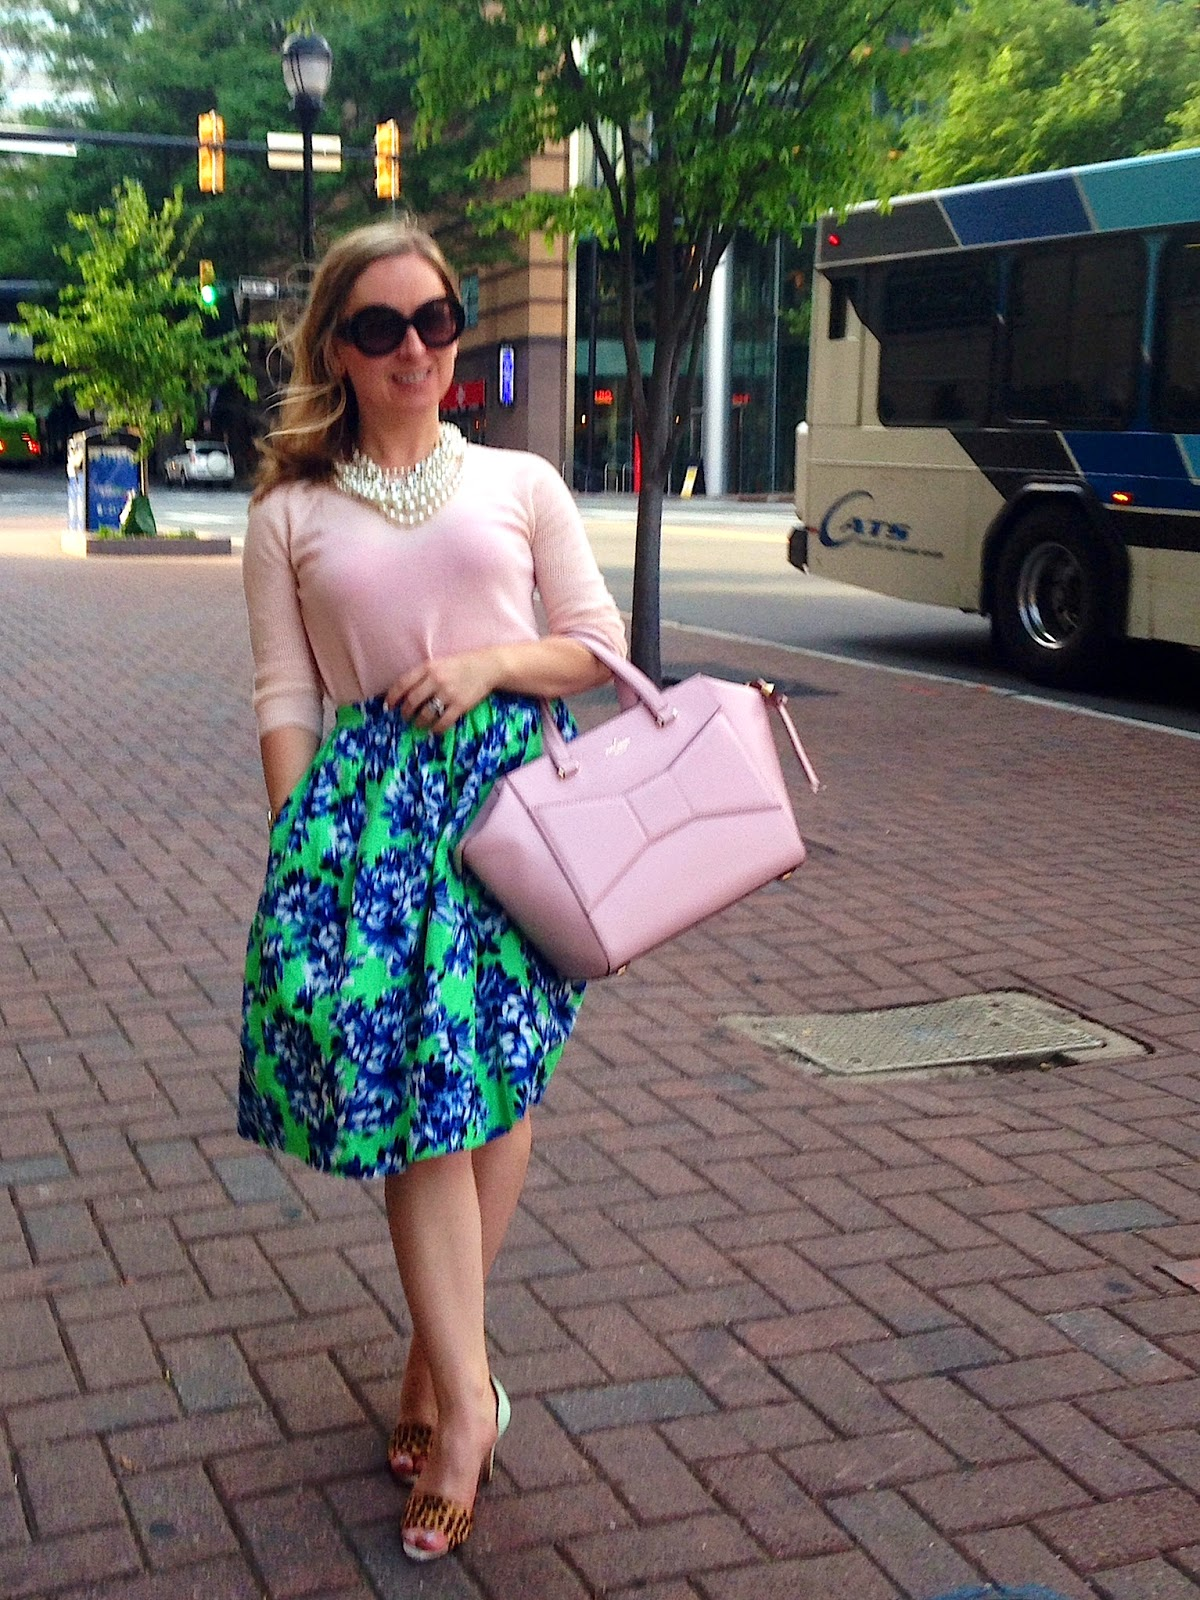 JCrew, Photo foral, Kate Spade, Charlotte, Blumenthal, Haute Child in the City, Chelsea MacMeekin